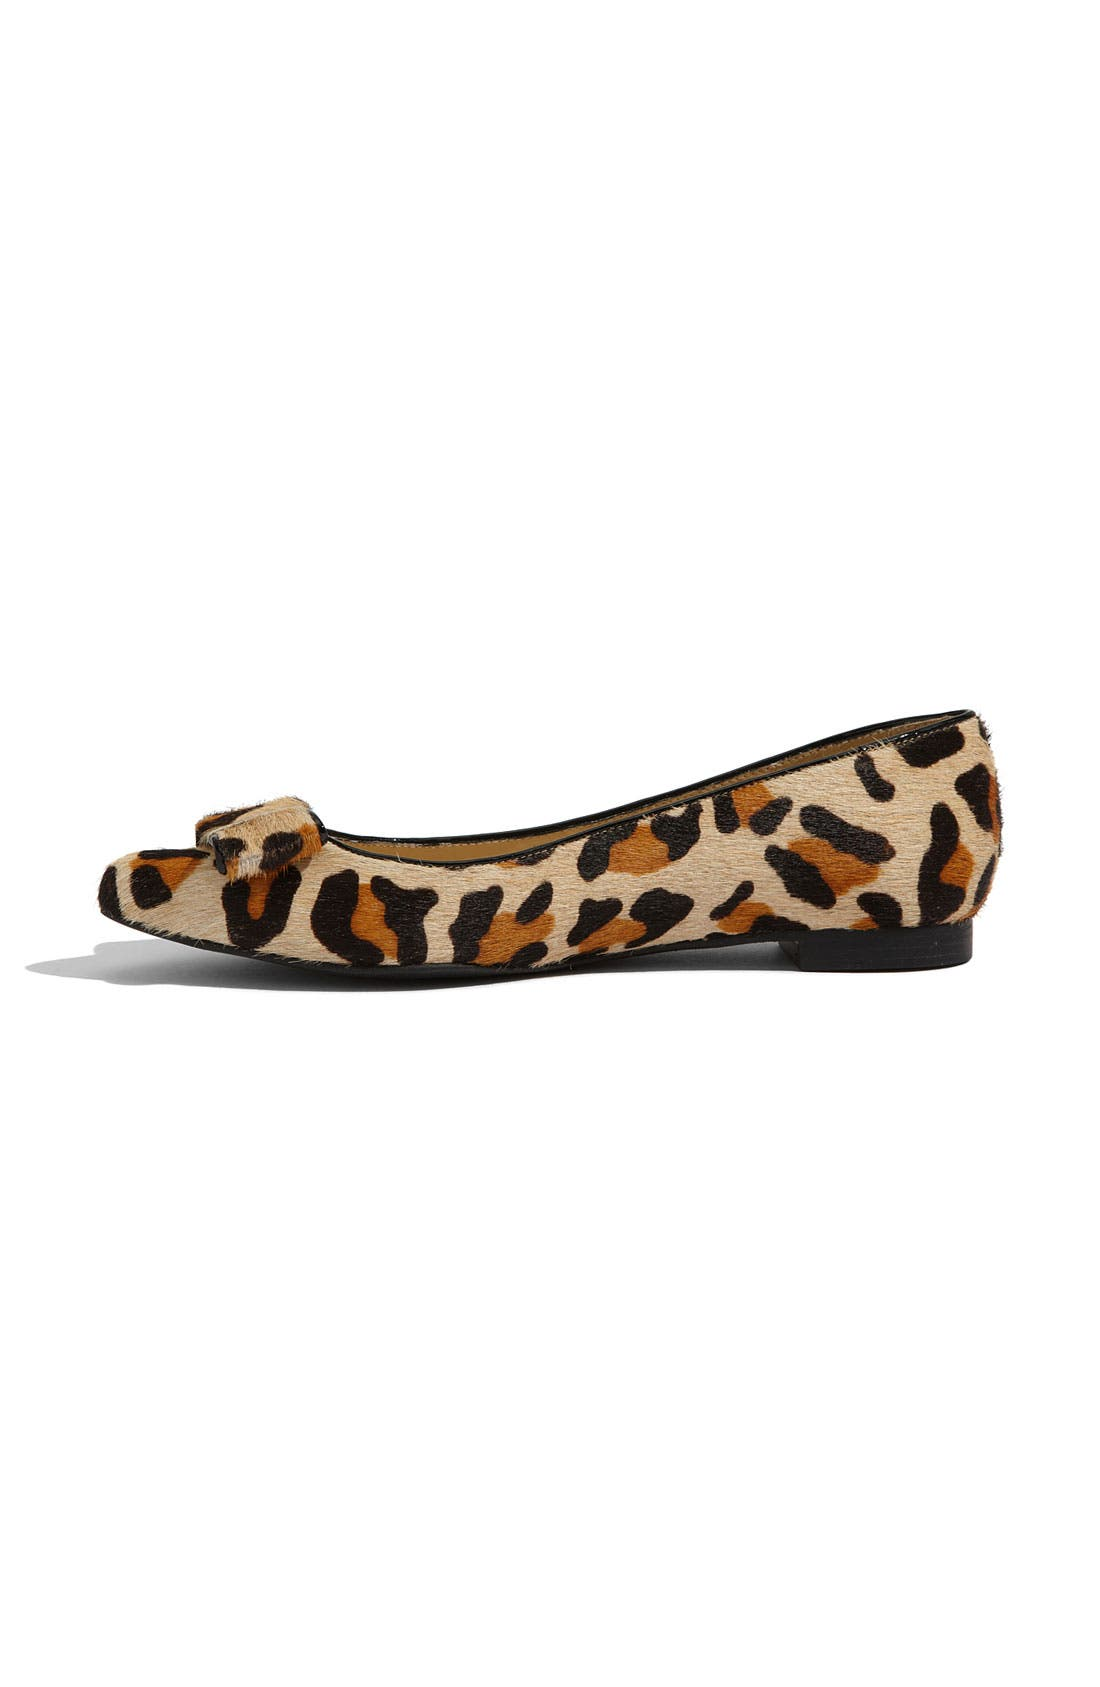 'elise' leopard print calf hair flat,                             Alternate thumbnail 2, color,                             Large Leopard Printed